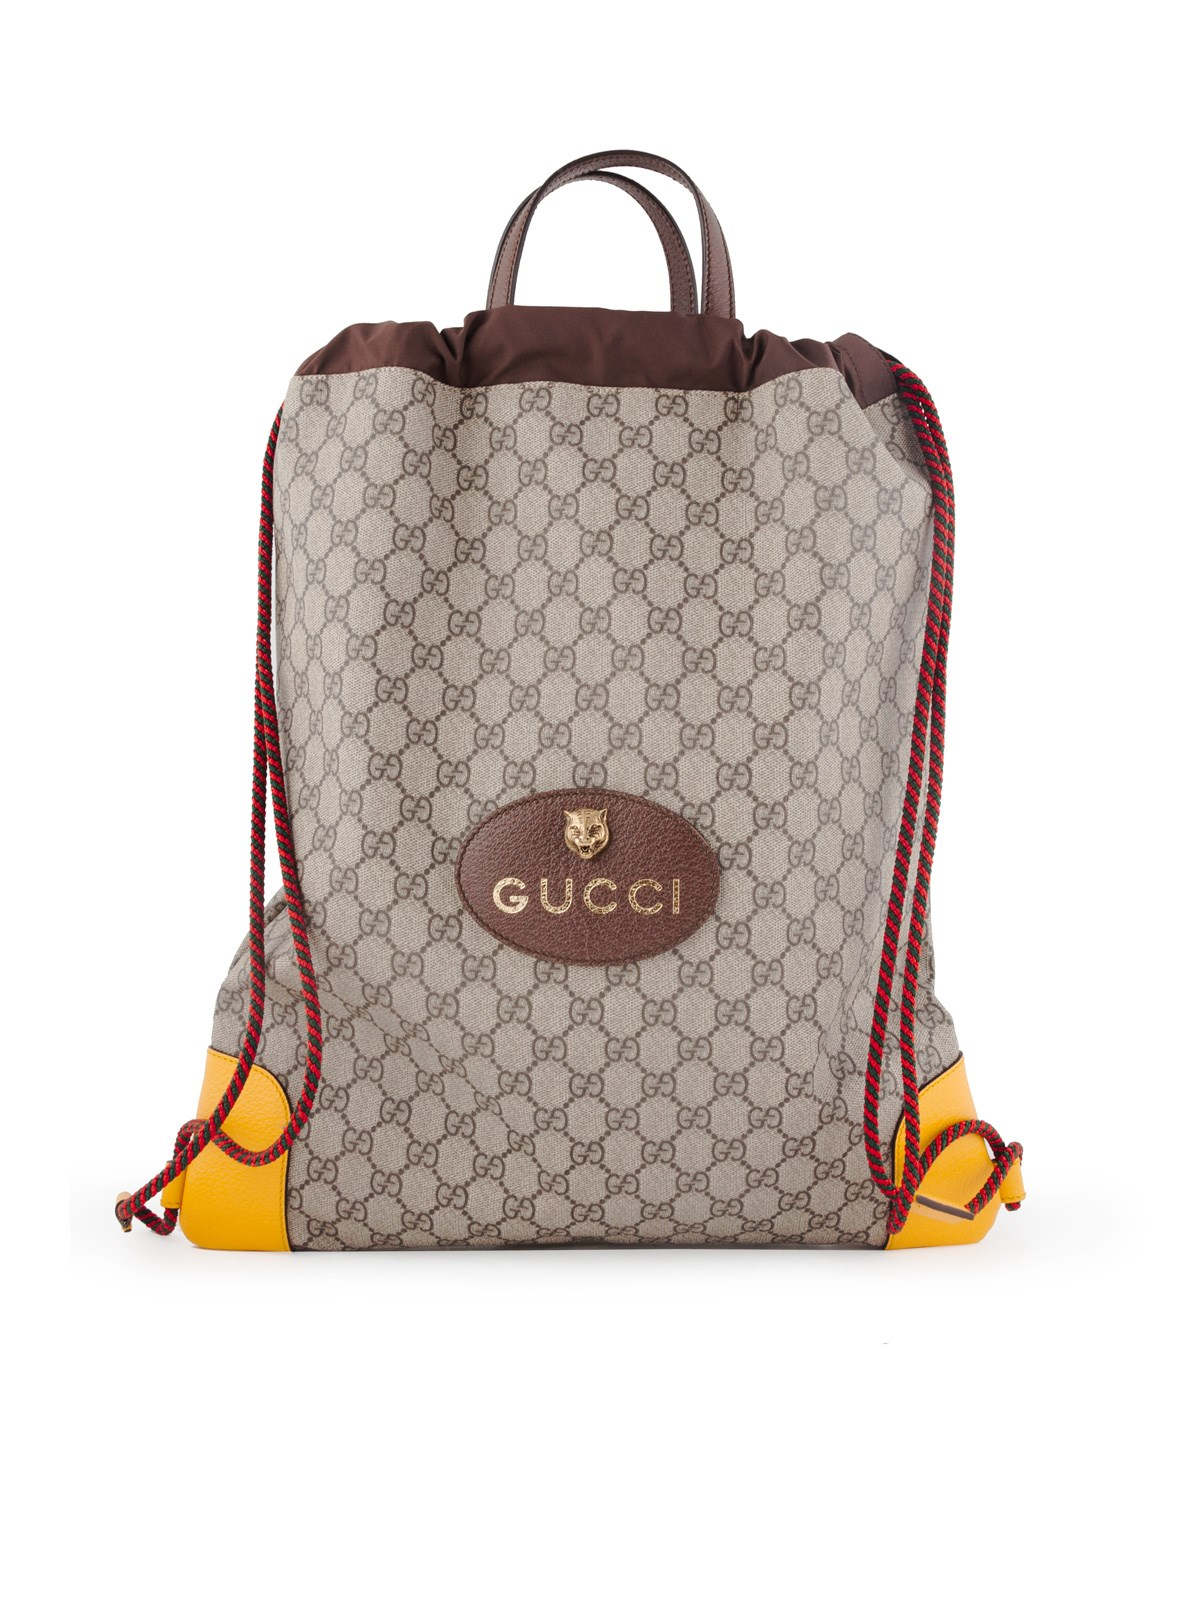 7ac498767c8 gucci GG SUPREME DRAWSTRING BACKPACK available on montiboutique.com ...